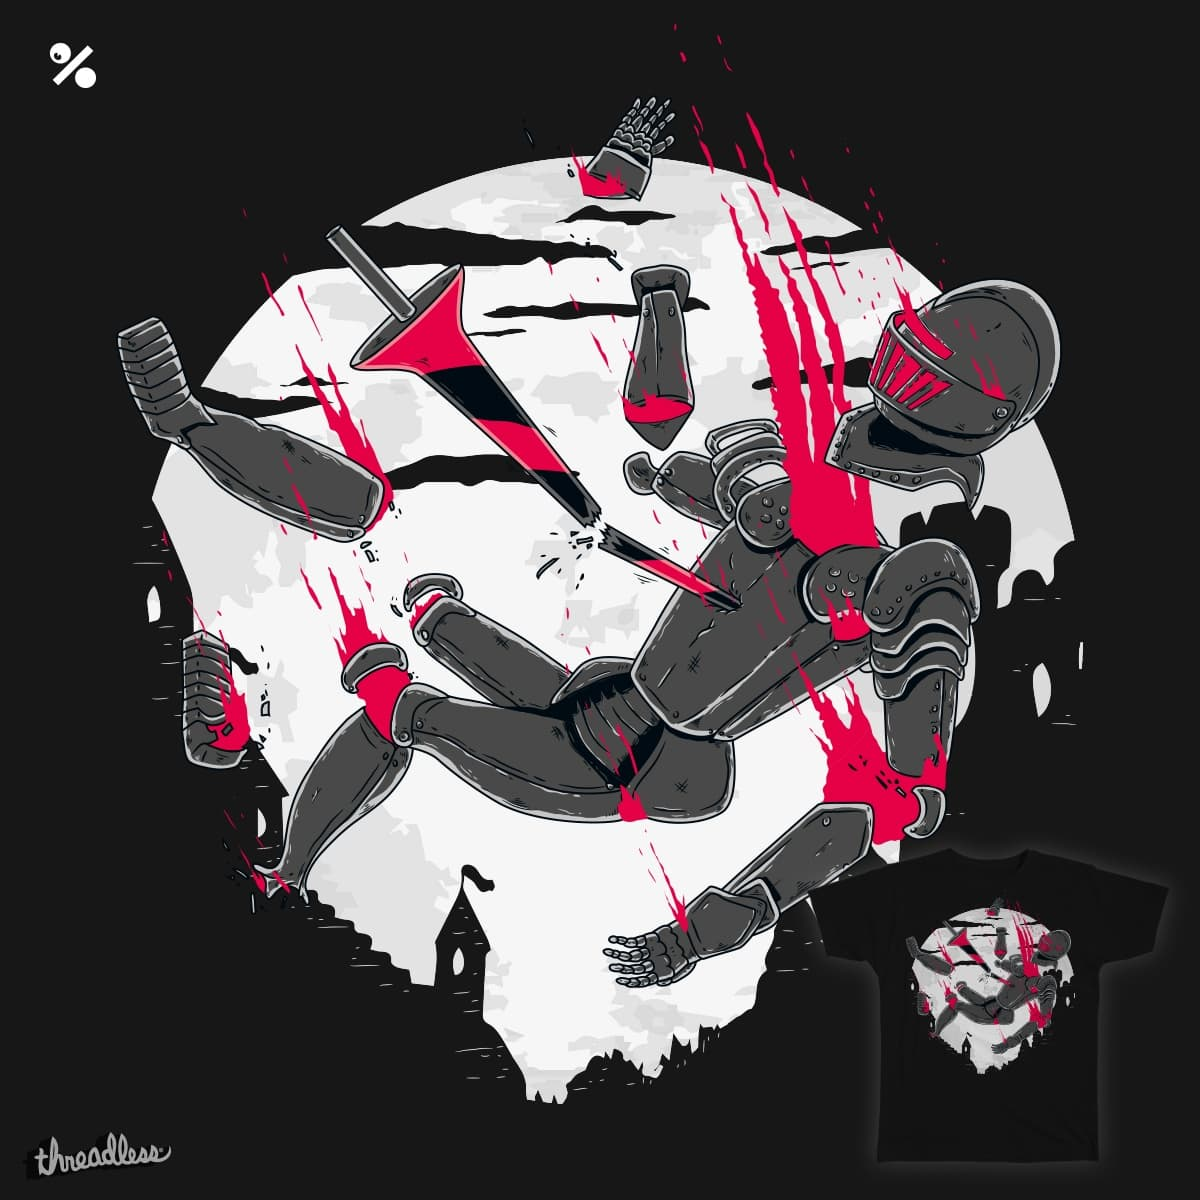 Knight Fall by weirdofared on Threadless